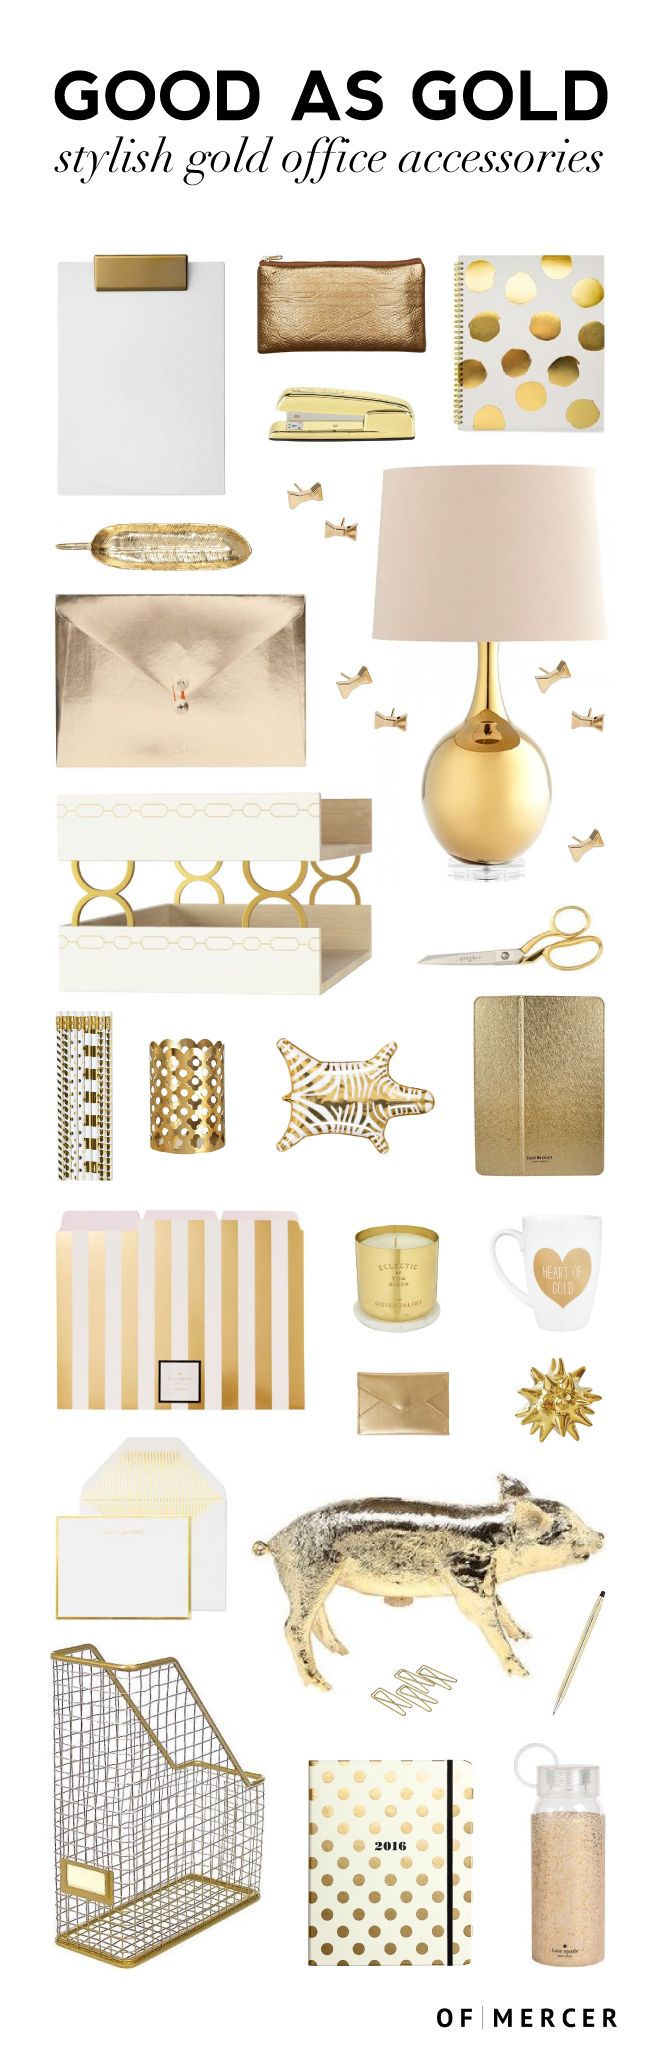 Incroyable Gold Desk Accessories | Of Mercer Blog | Detailed Image